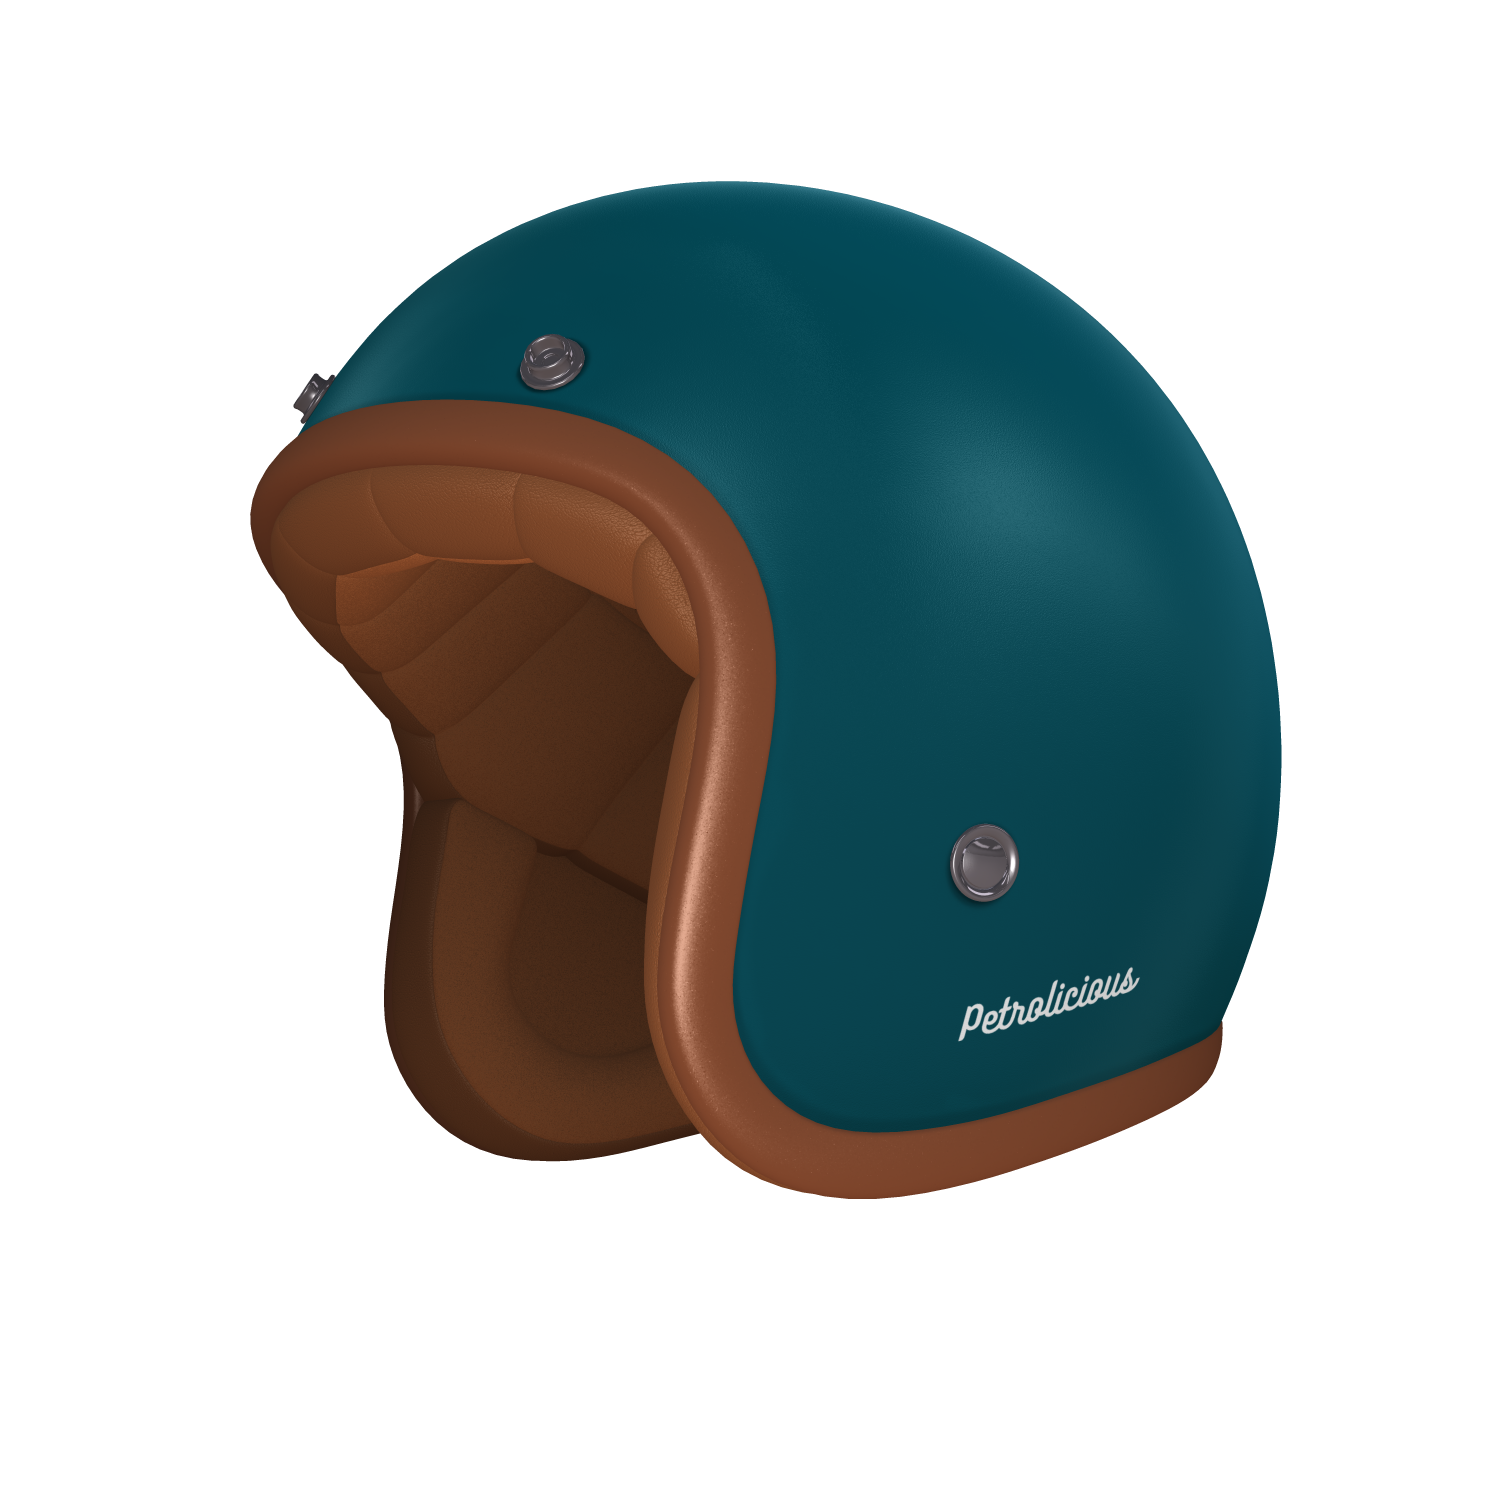 #helmade ONE Classic. Choose between over 100 different colors in our configurator on www.helmade.com #helmetdesign #brown #petrol #basic #matte